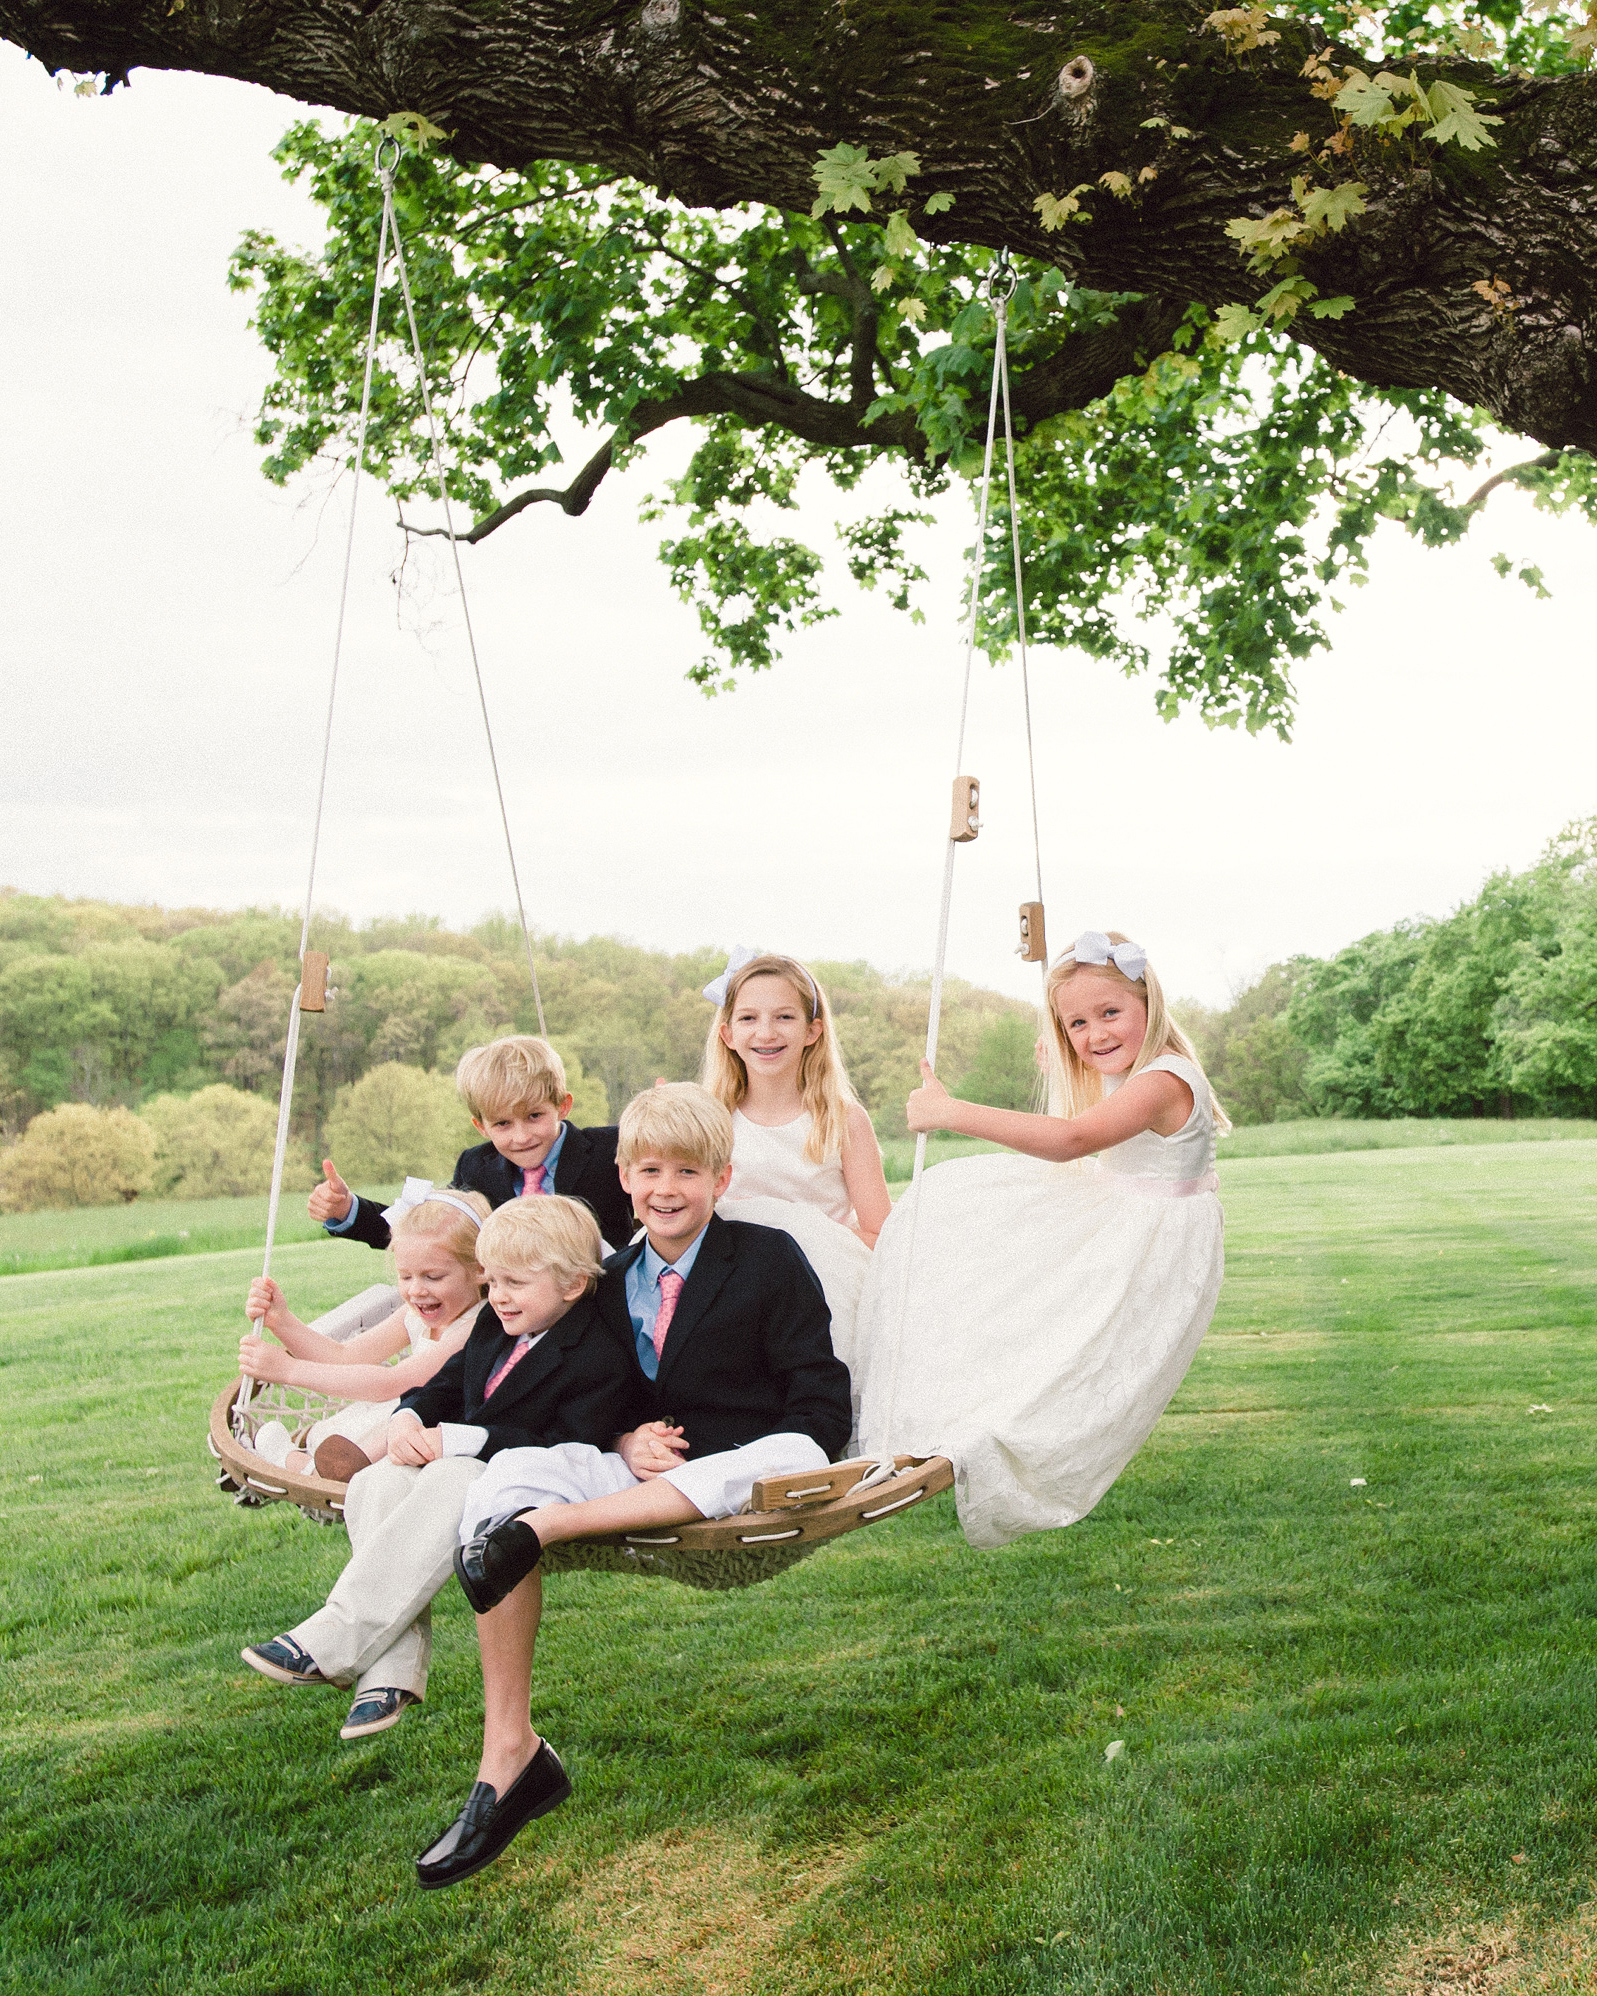 katy andrew wedding swing